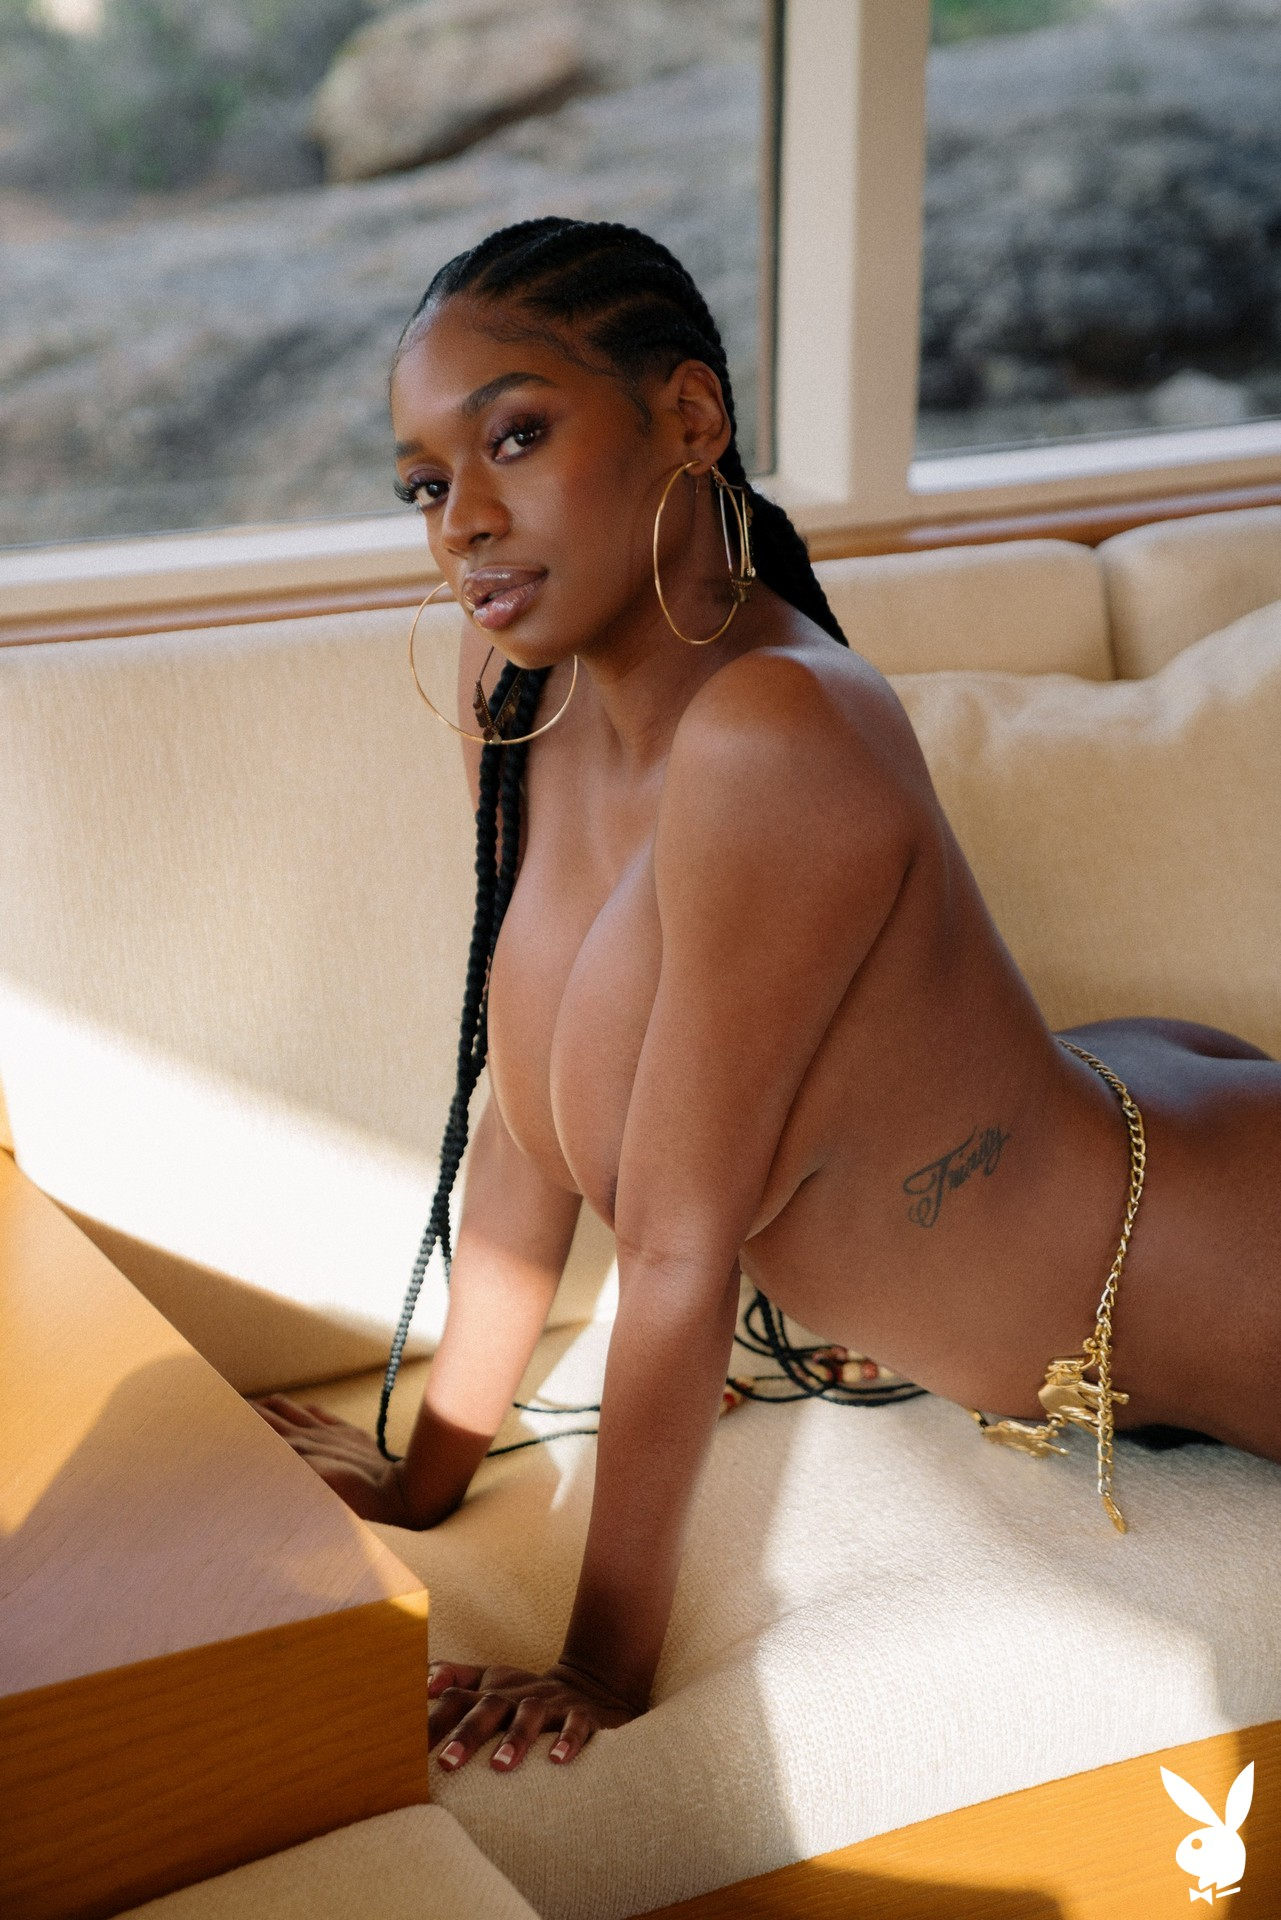 Nyla In Women's Intuition Playboy Plus (25)